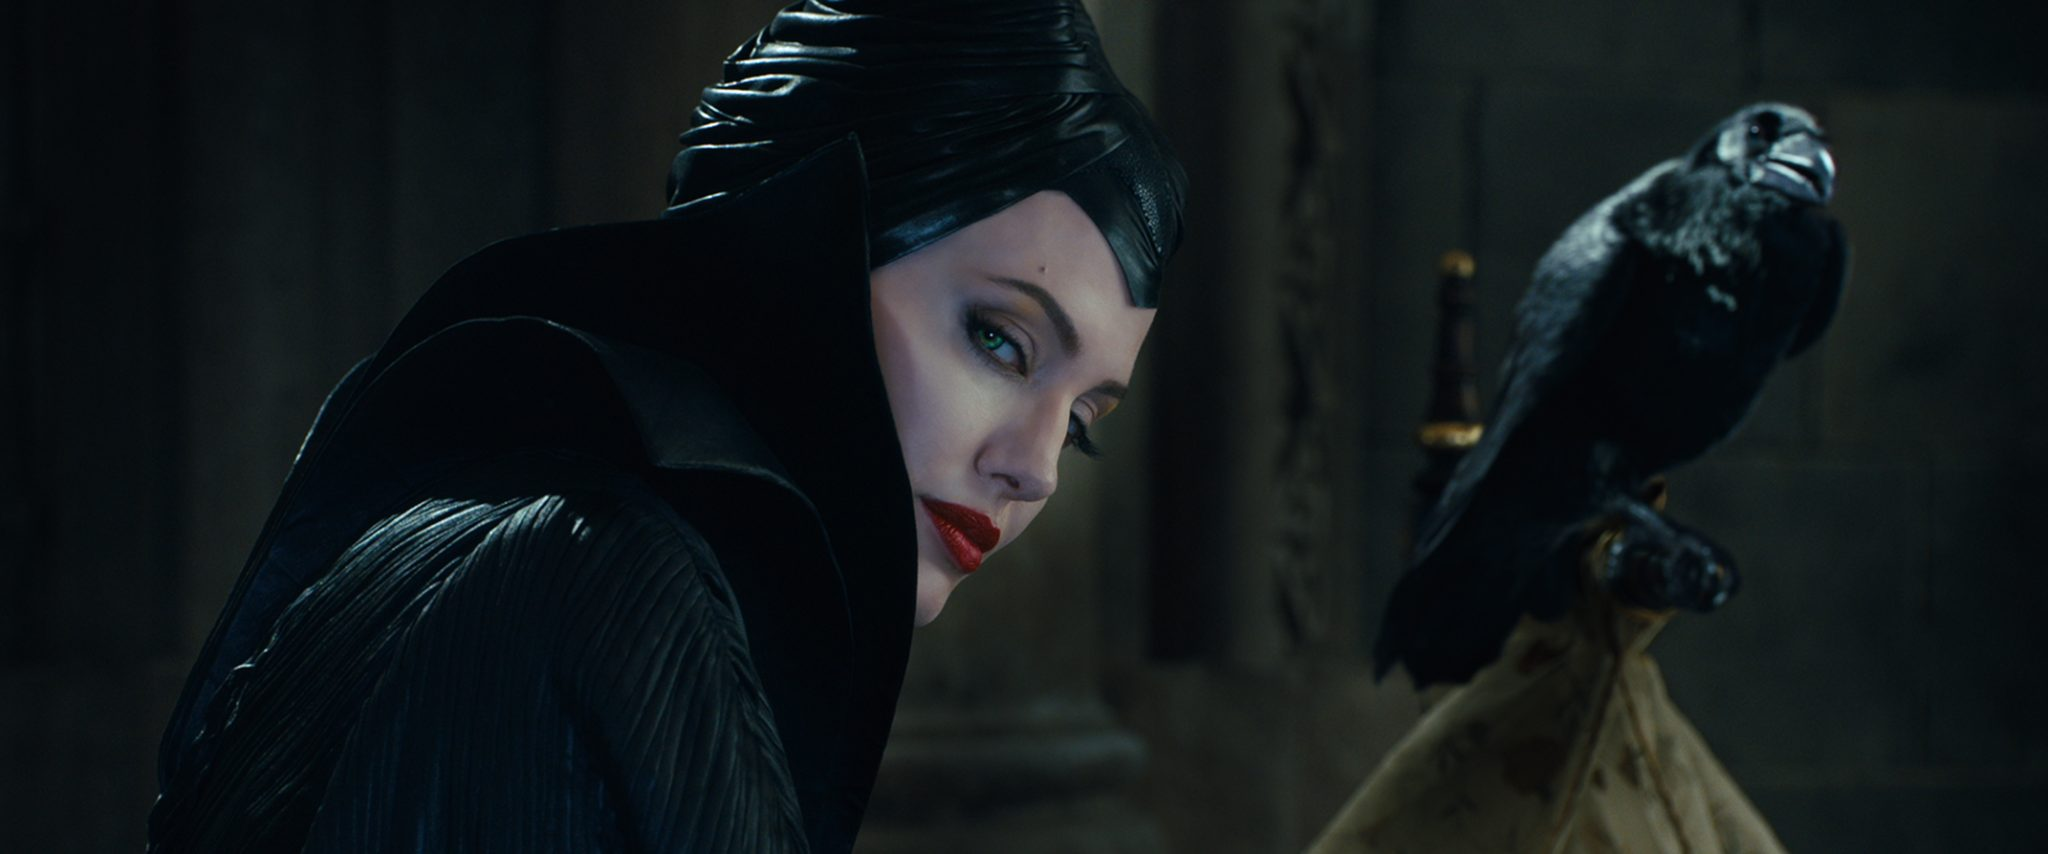 maleficent-2-jez-butterworth